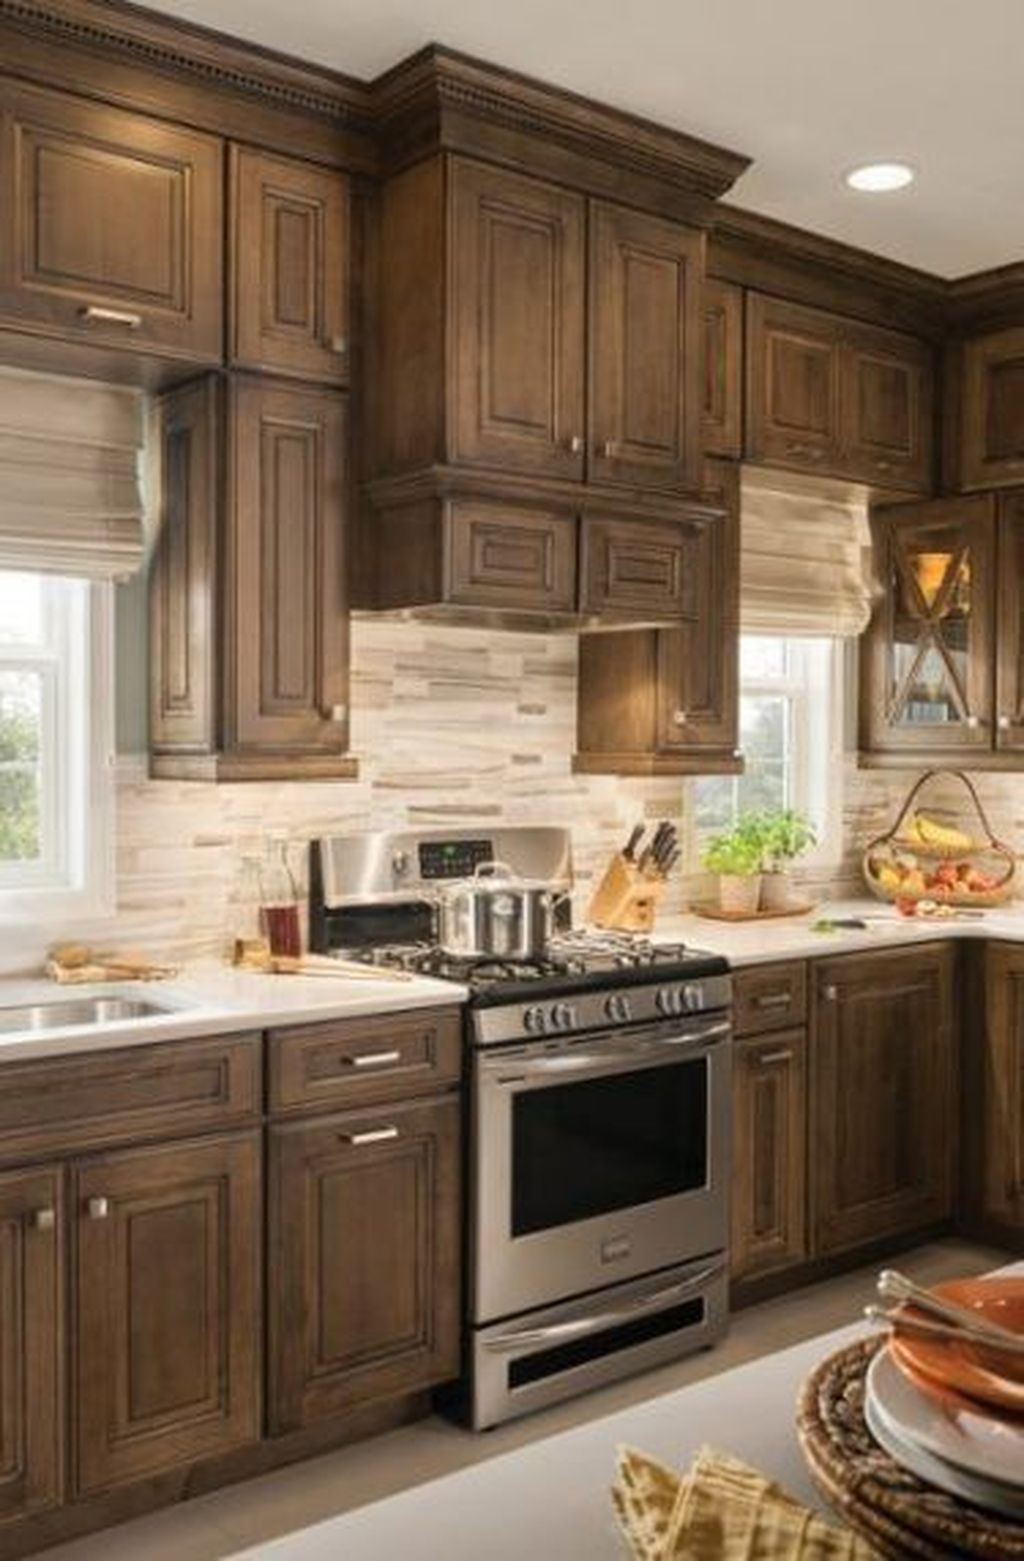 stunning farmhouse kitchen cabinets design ideas which you definitely like 20 stained kitchen on farmhouse kitchen cabinets id=41168